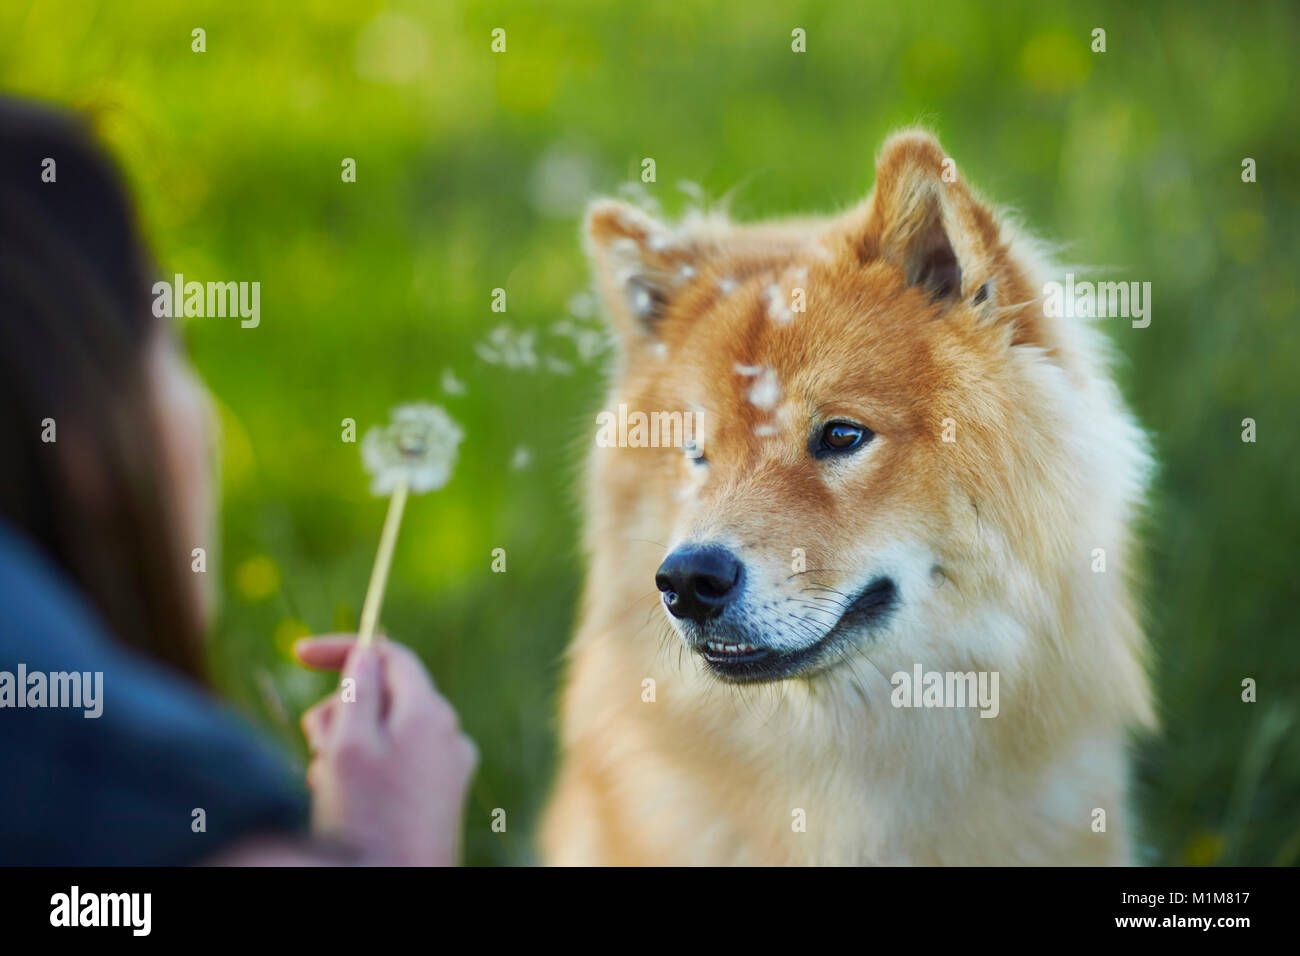 Eurasier, Eurasian. Adult dog watching blowball, held by woman. Germany - Stock Image